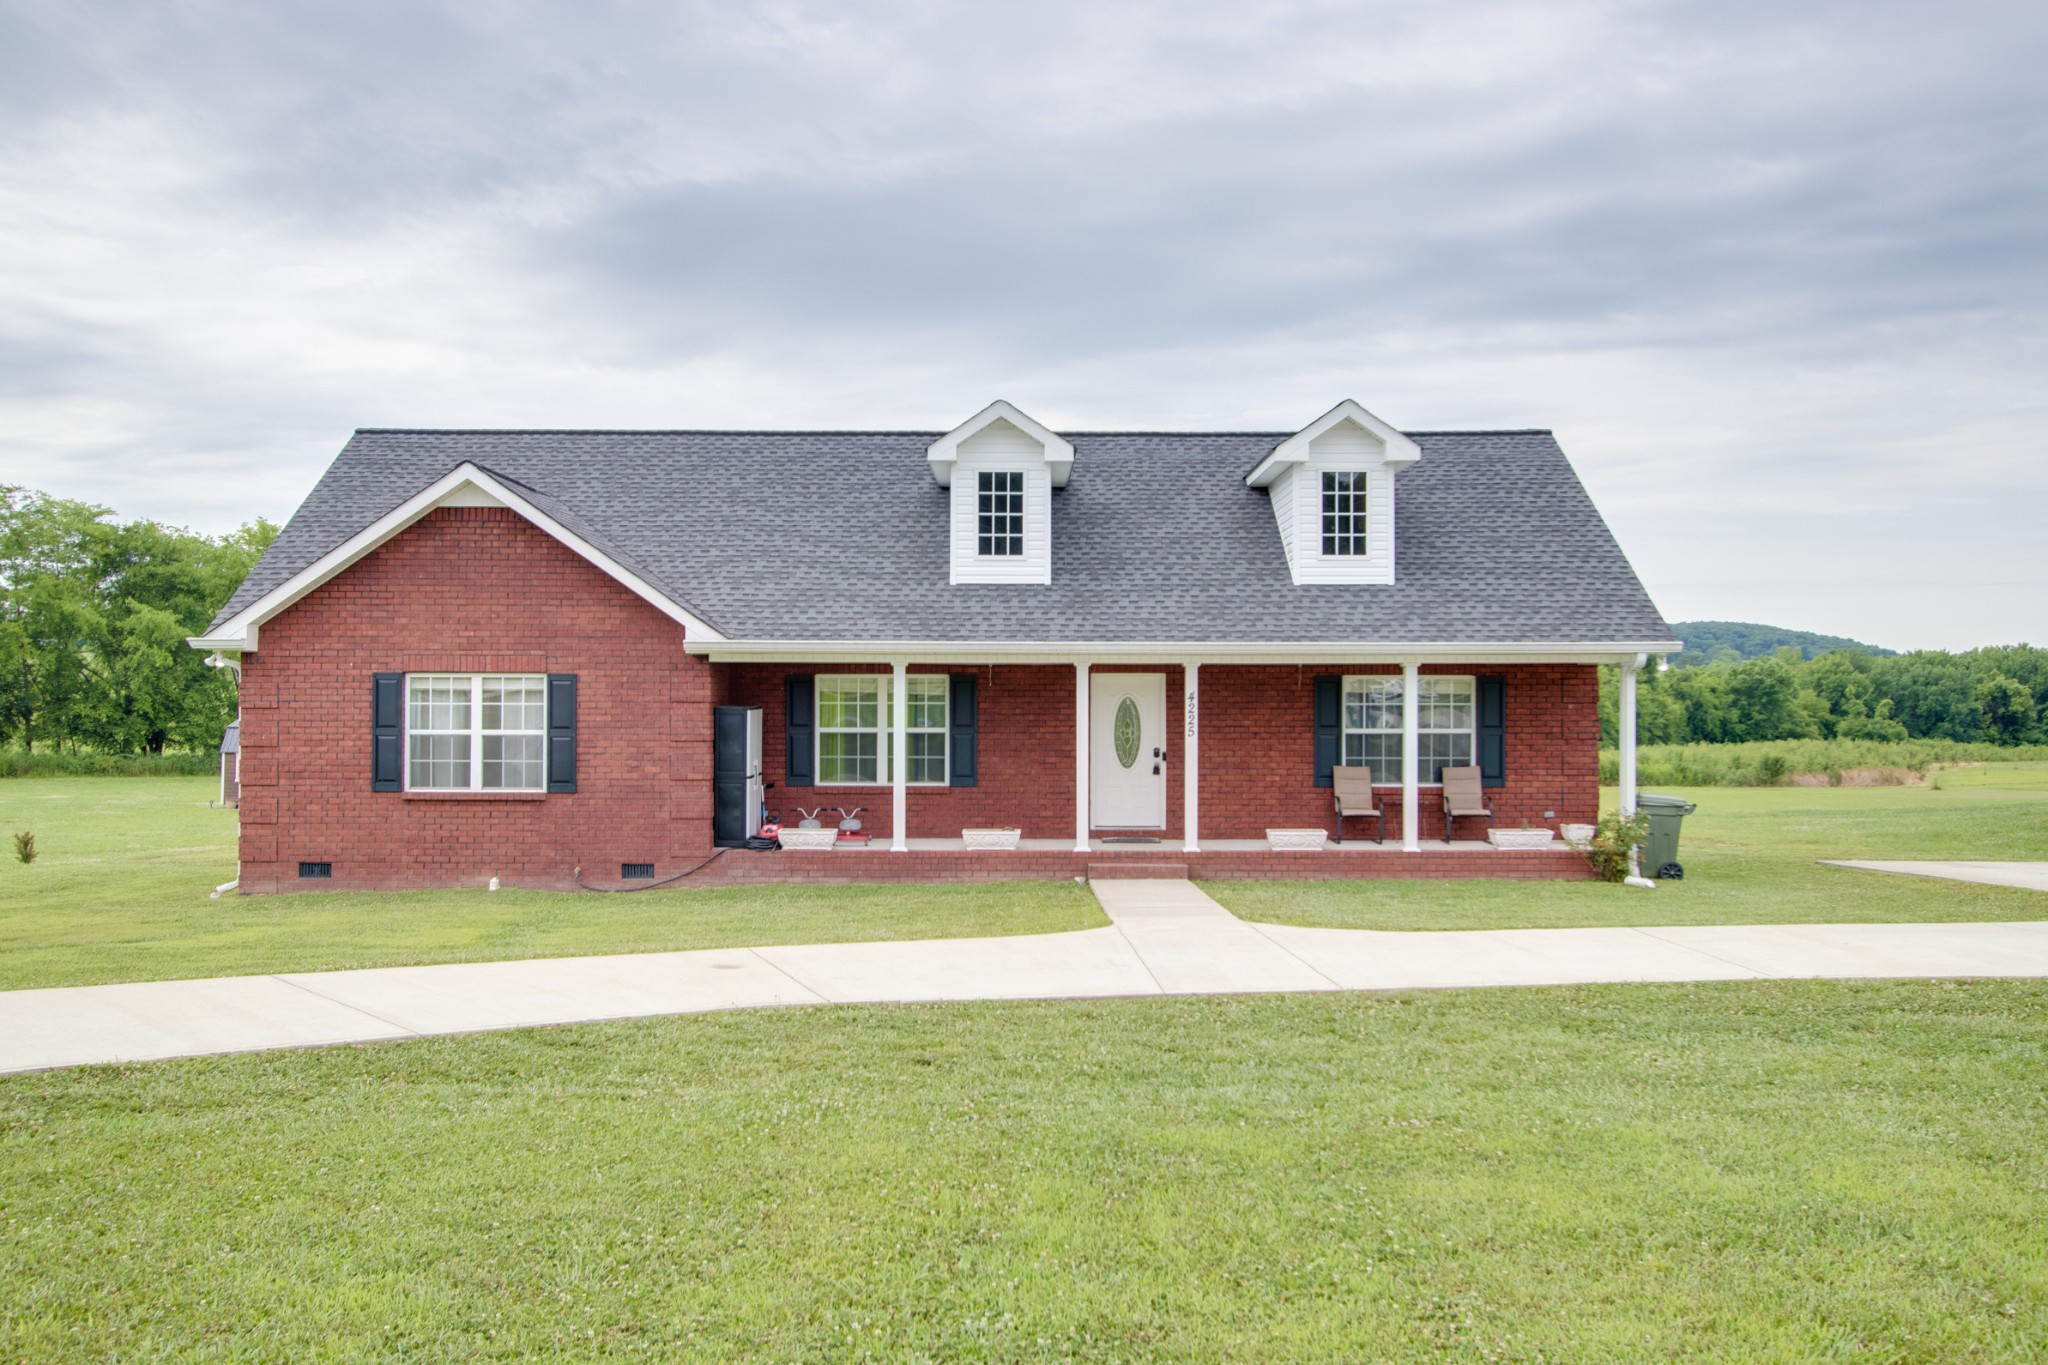 4225 Old Hwy 25 Property Photo - Hartsville, TN real estate listing